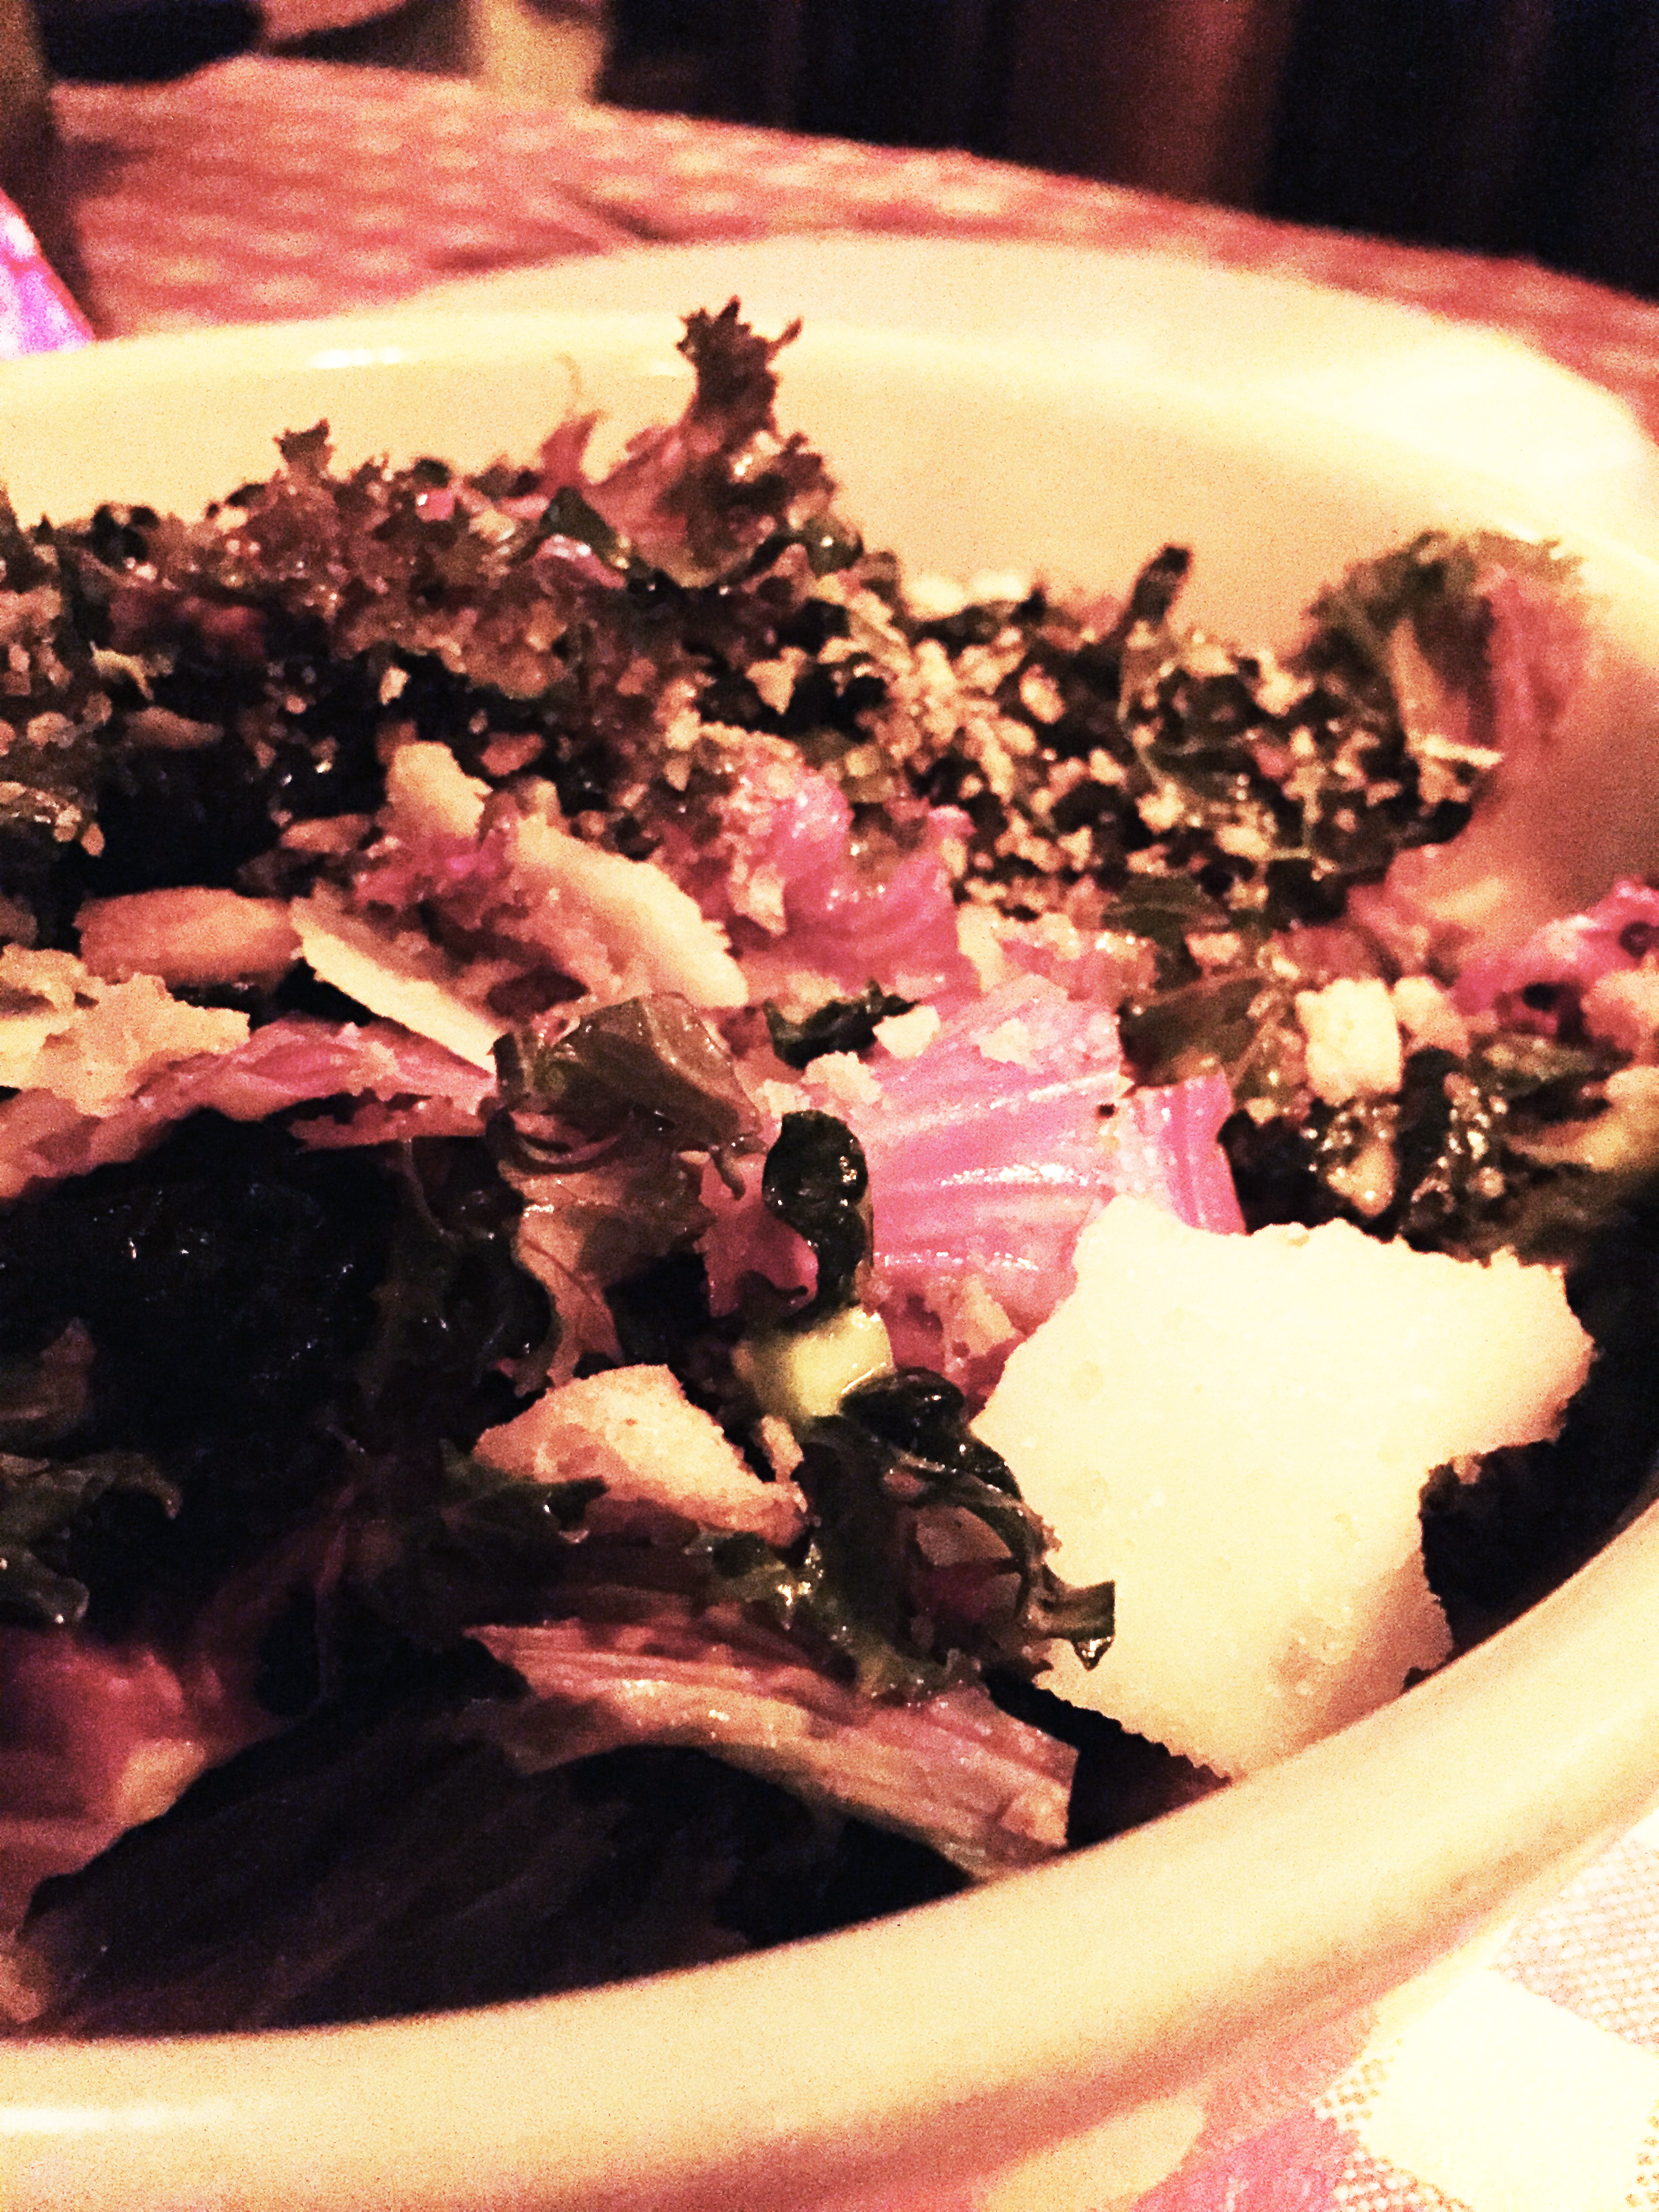 Kale Caesar with Tuscan and Red Russian kale, parmigaiano, garlic, croutons, and anchovy-caesar dressing.